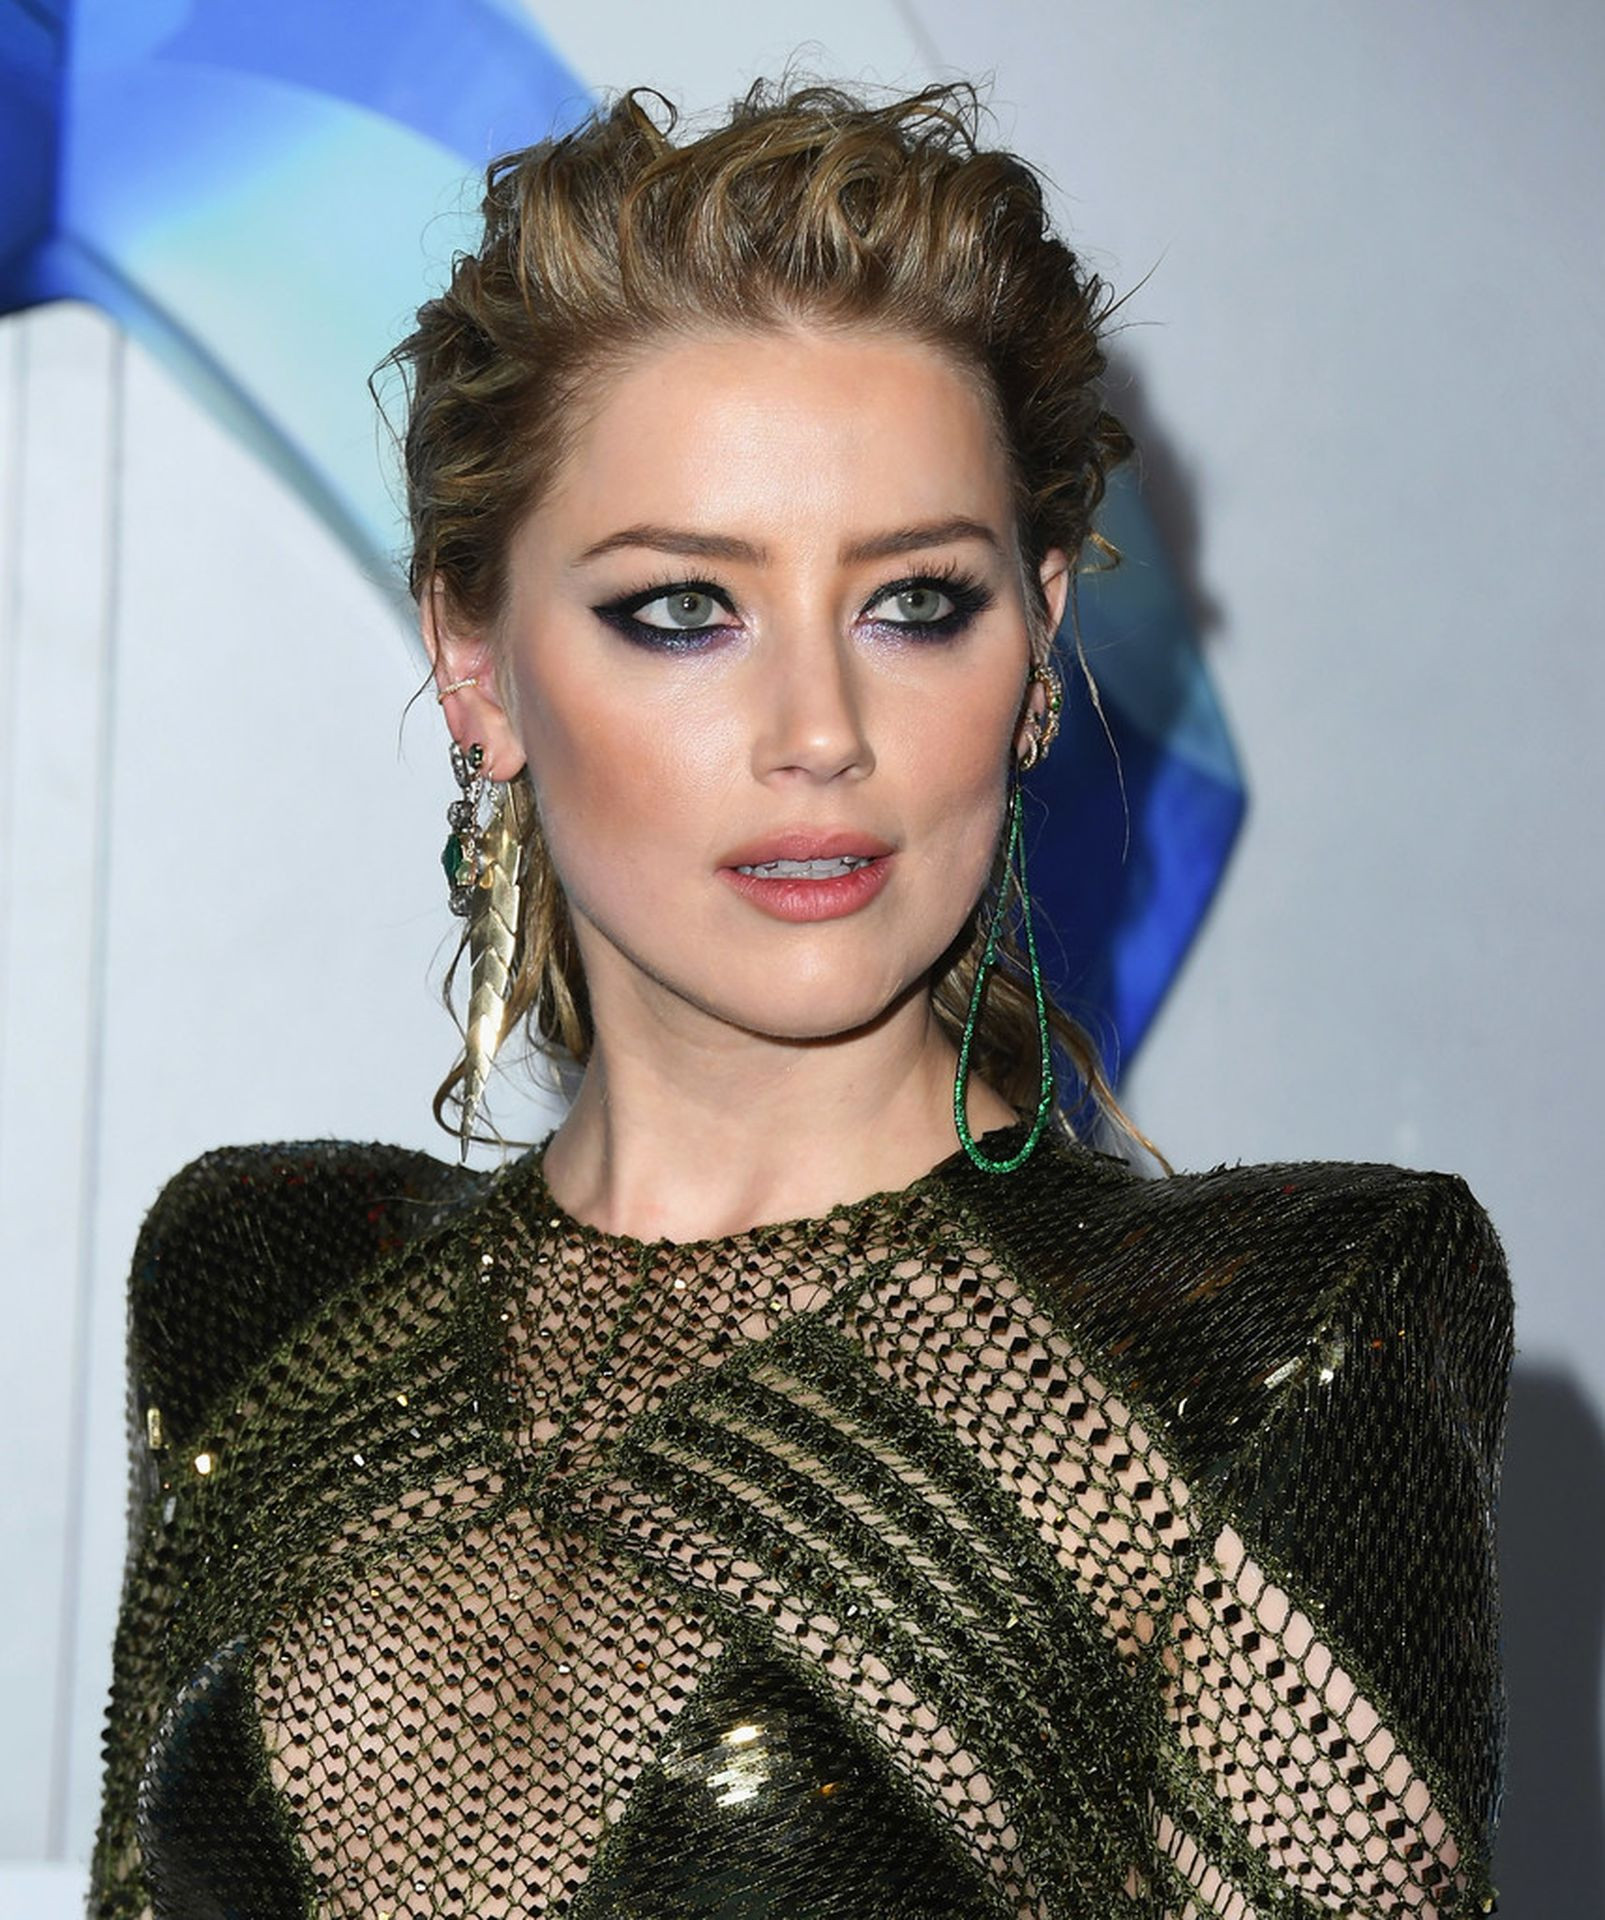 Amber Heard Sexy TheFappening.nu 4e1dad1b59d0edc62.jpg